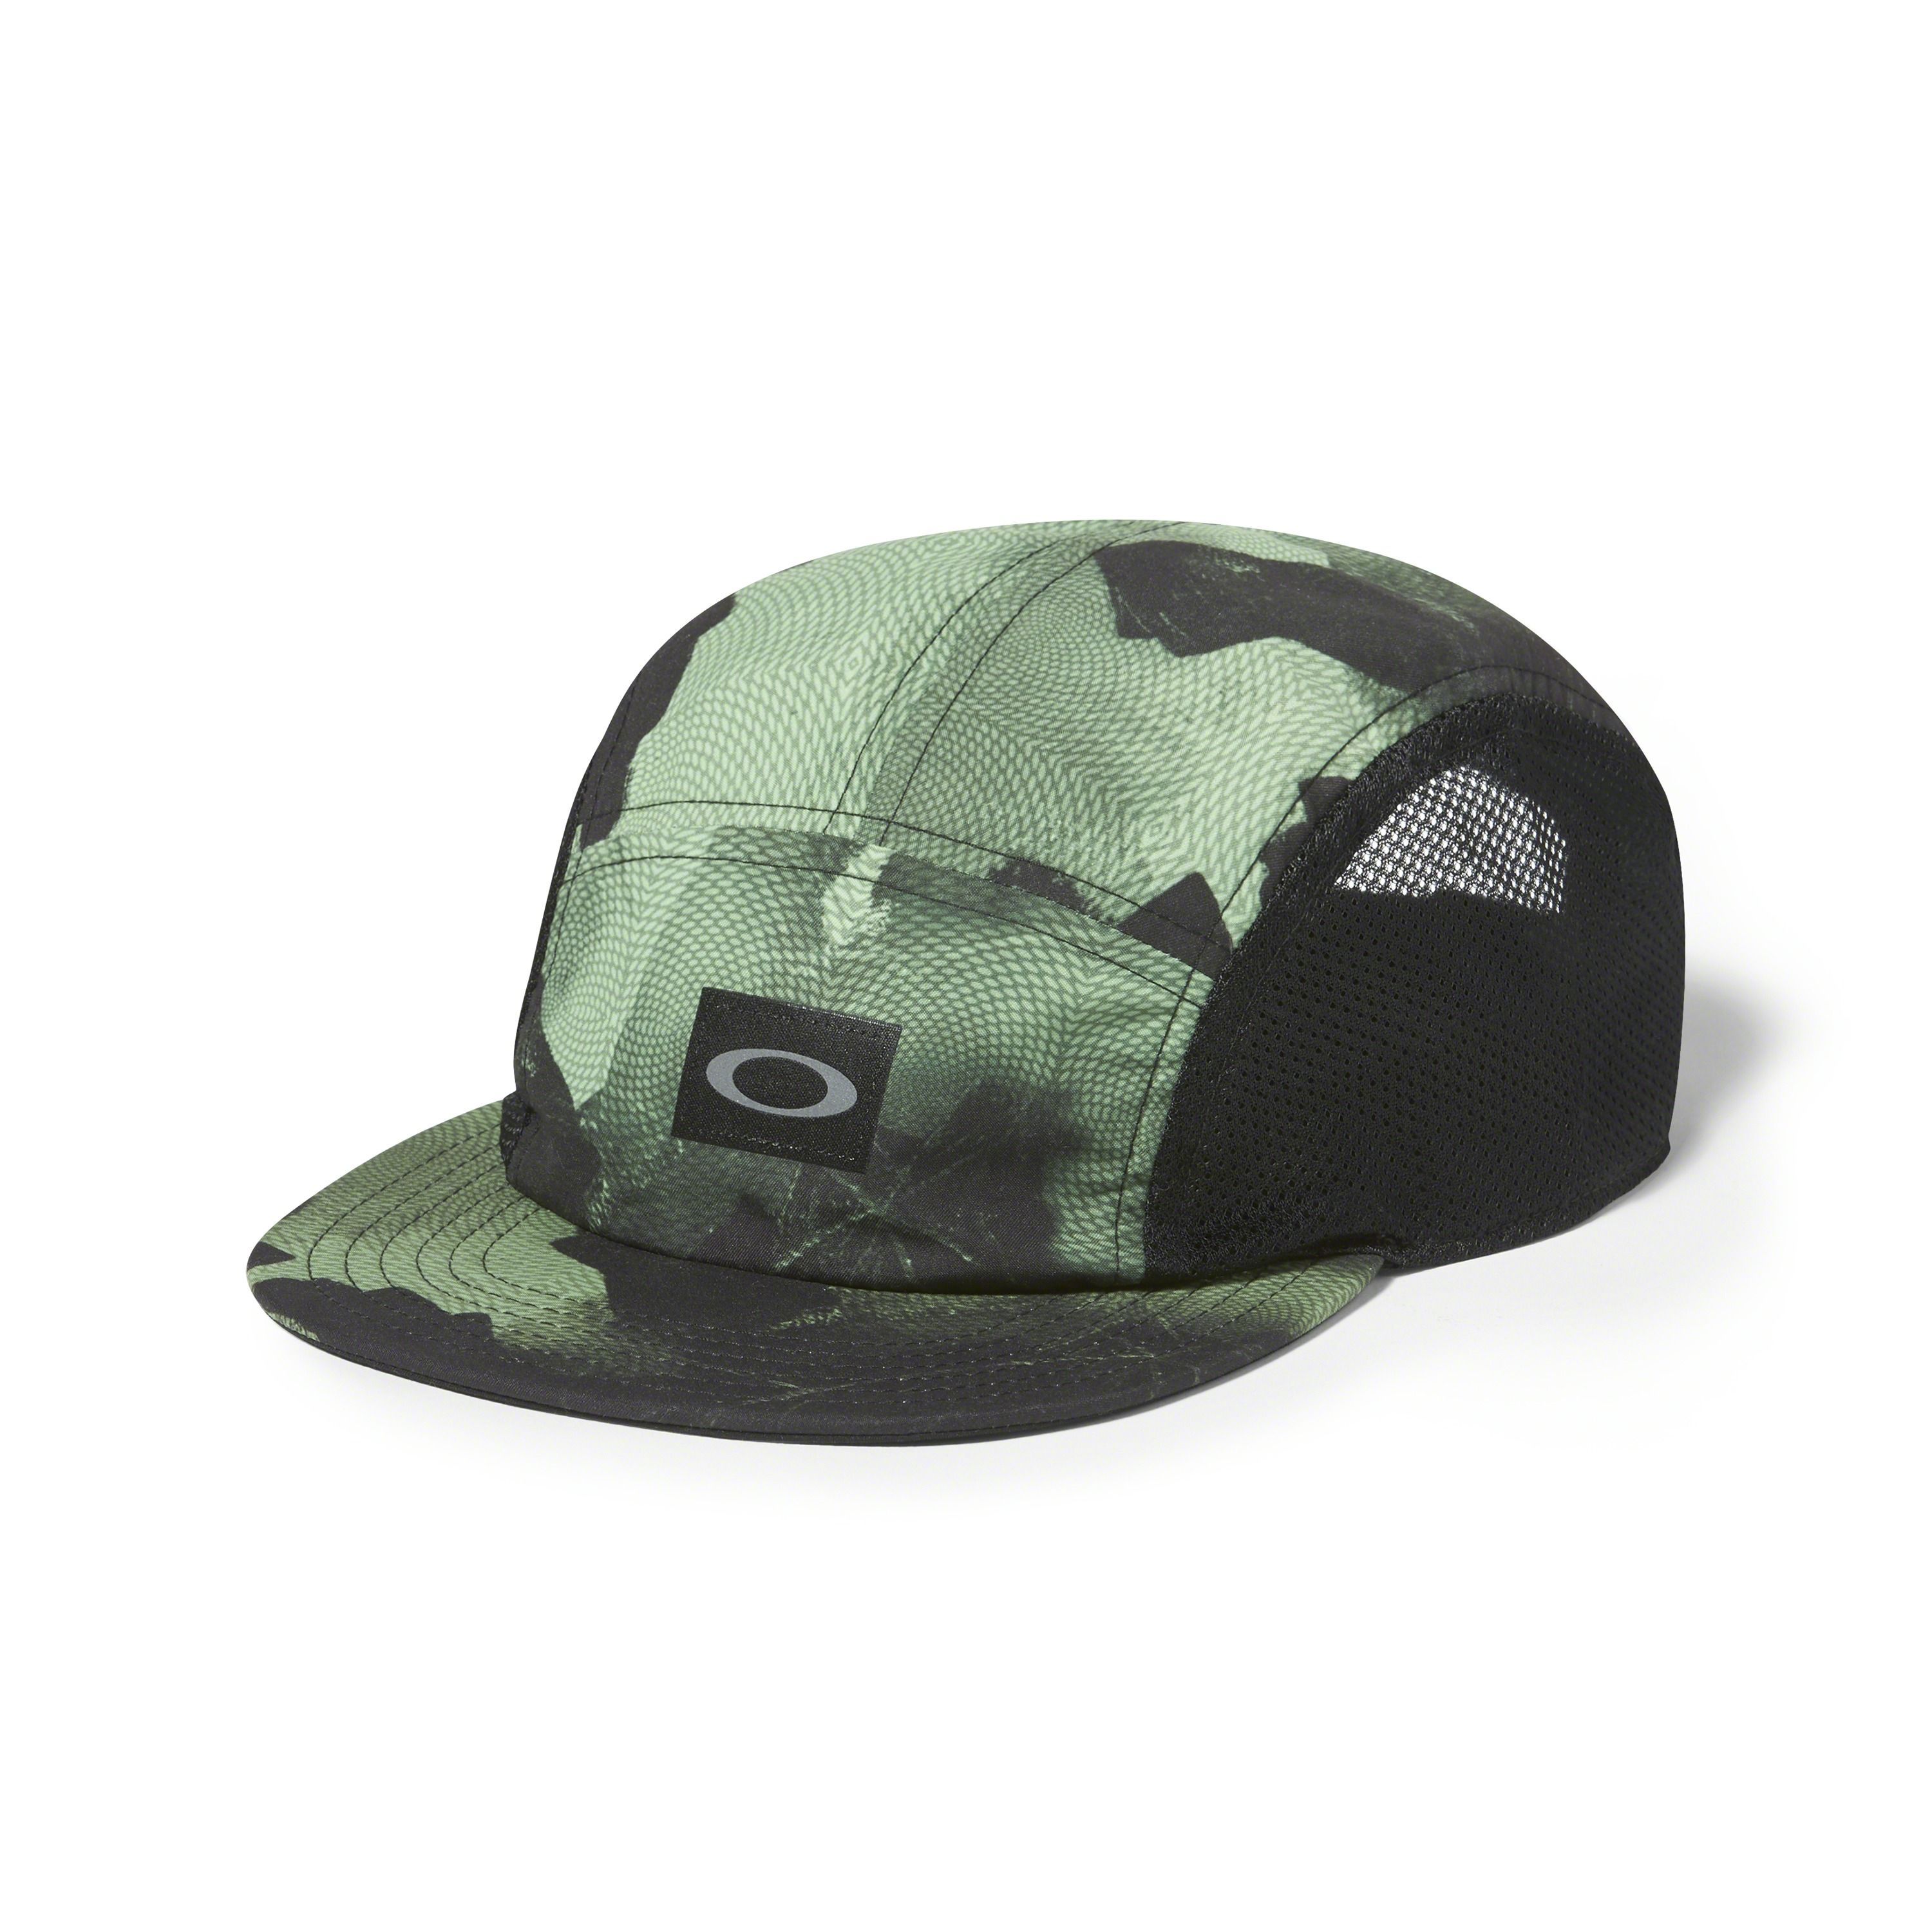 Shop Oakley 5 Panel Performance Hat in VIPER at the official Oakley online store.